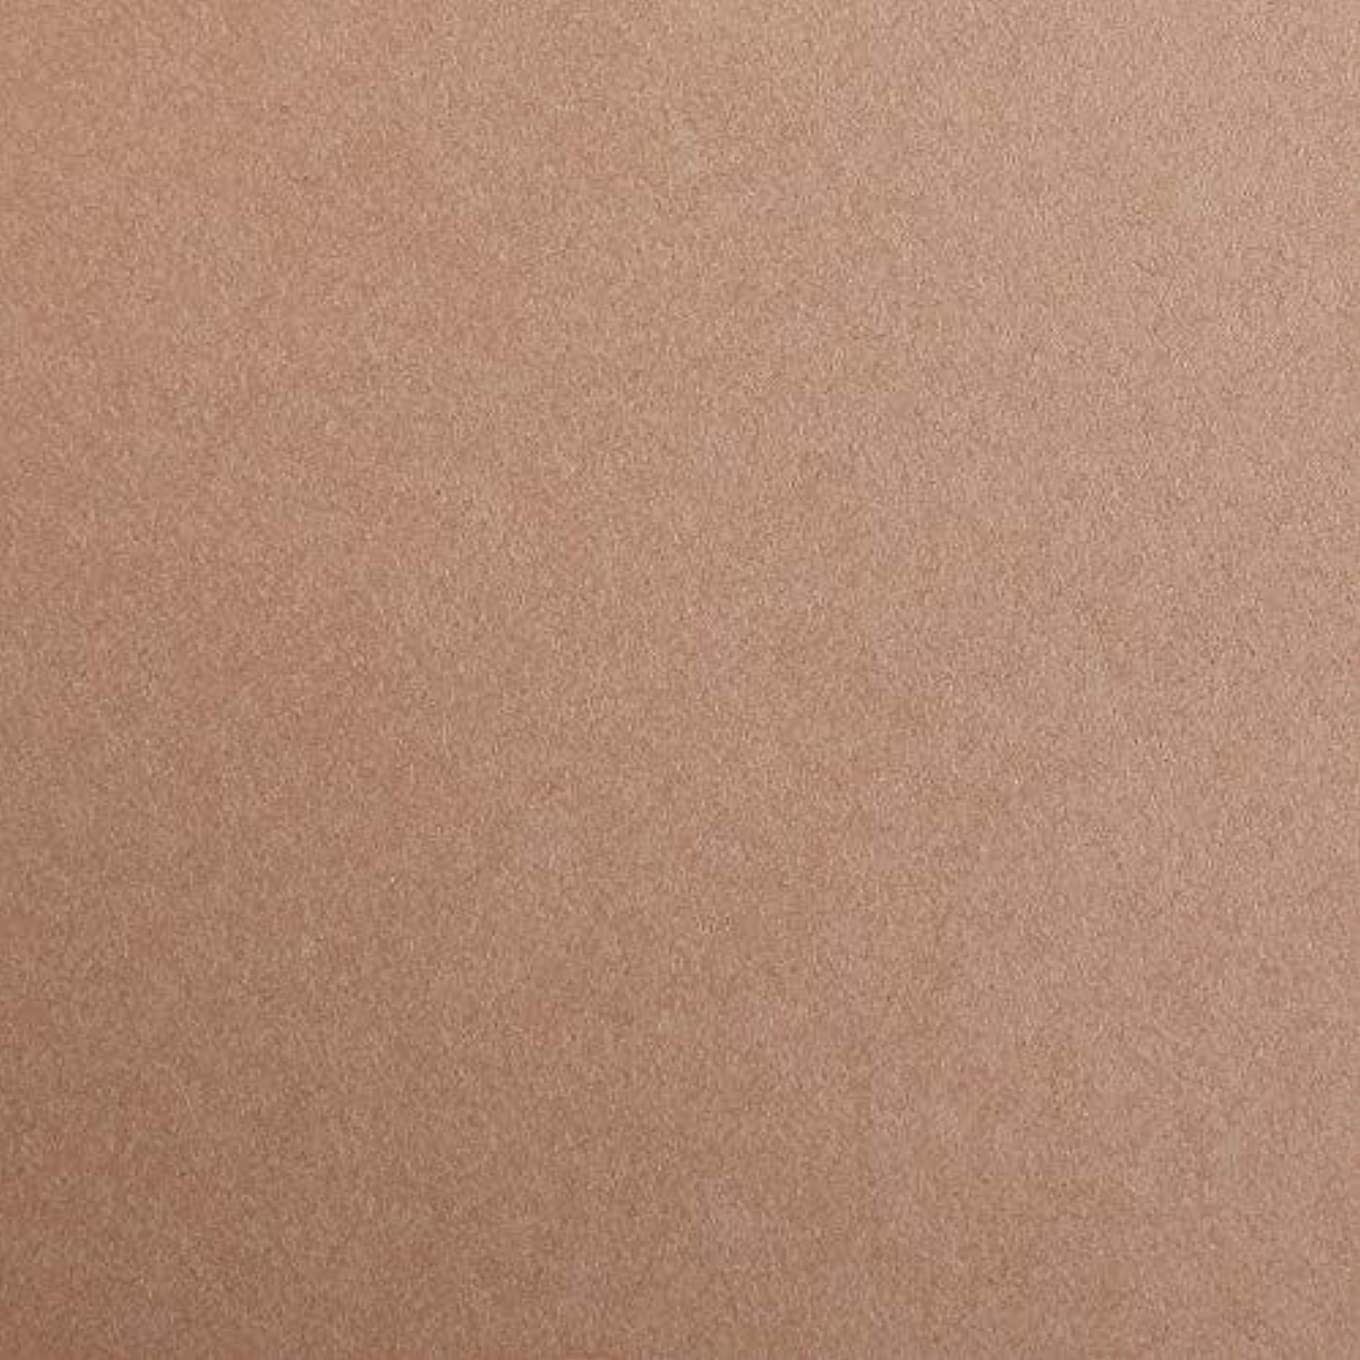 Clairefontaine Maya Coloured Smooth Drawing Paper, 270 g, A3 - Light Brown, Pack of 25 Sheets